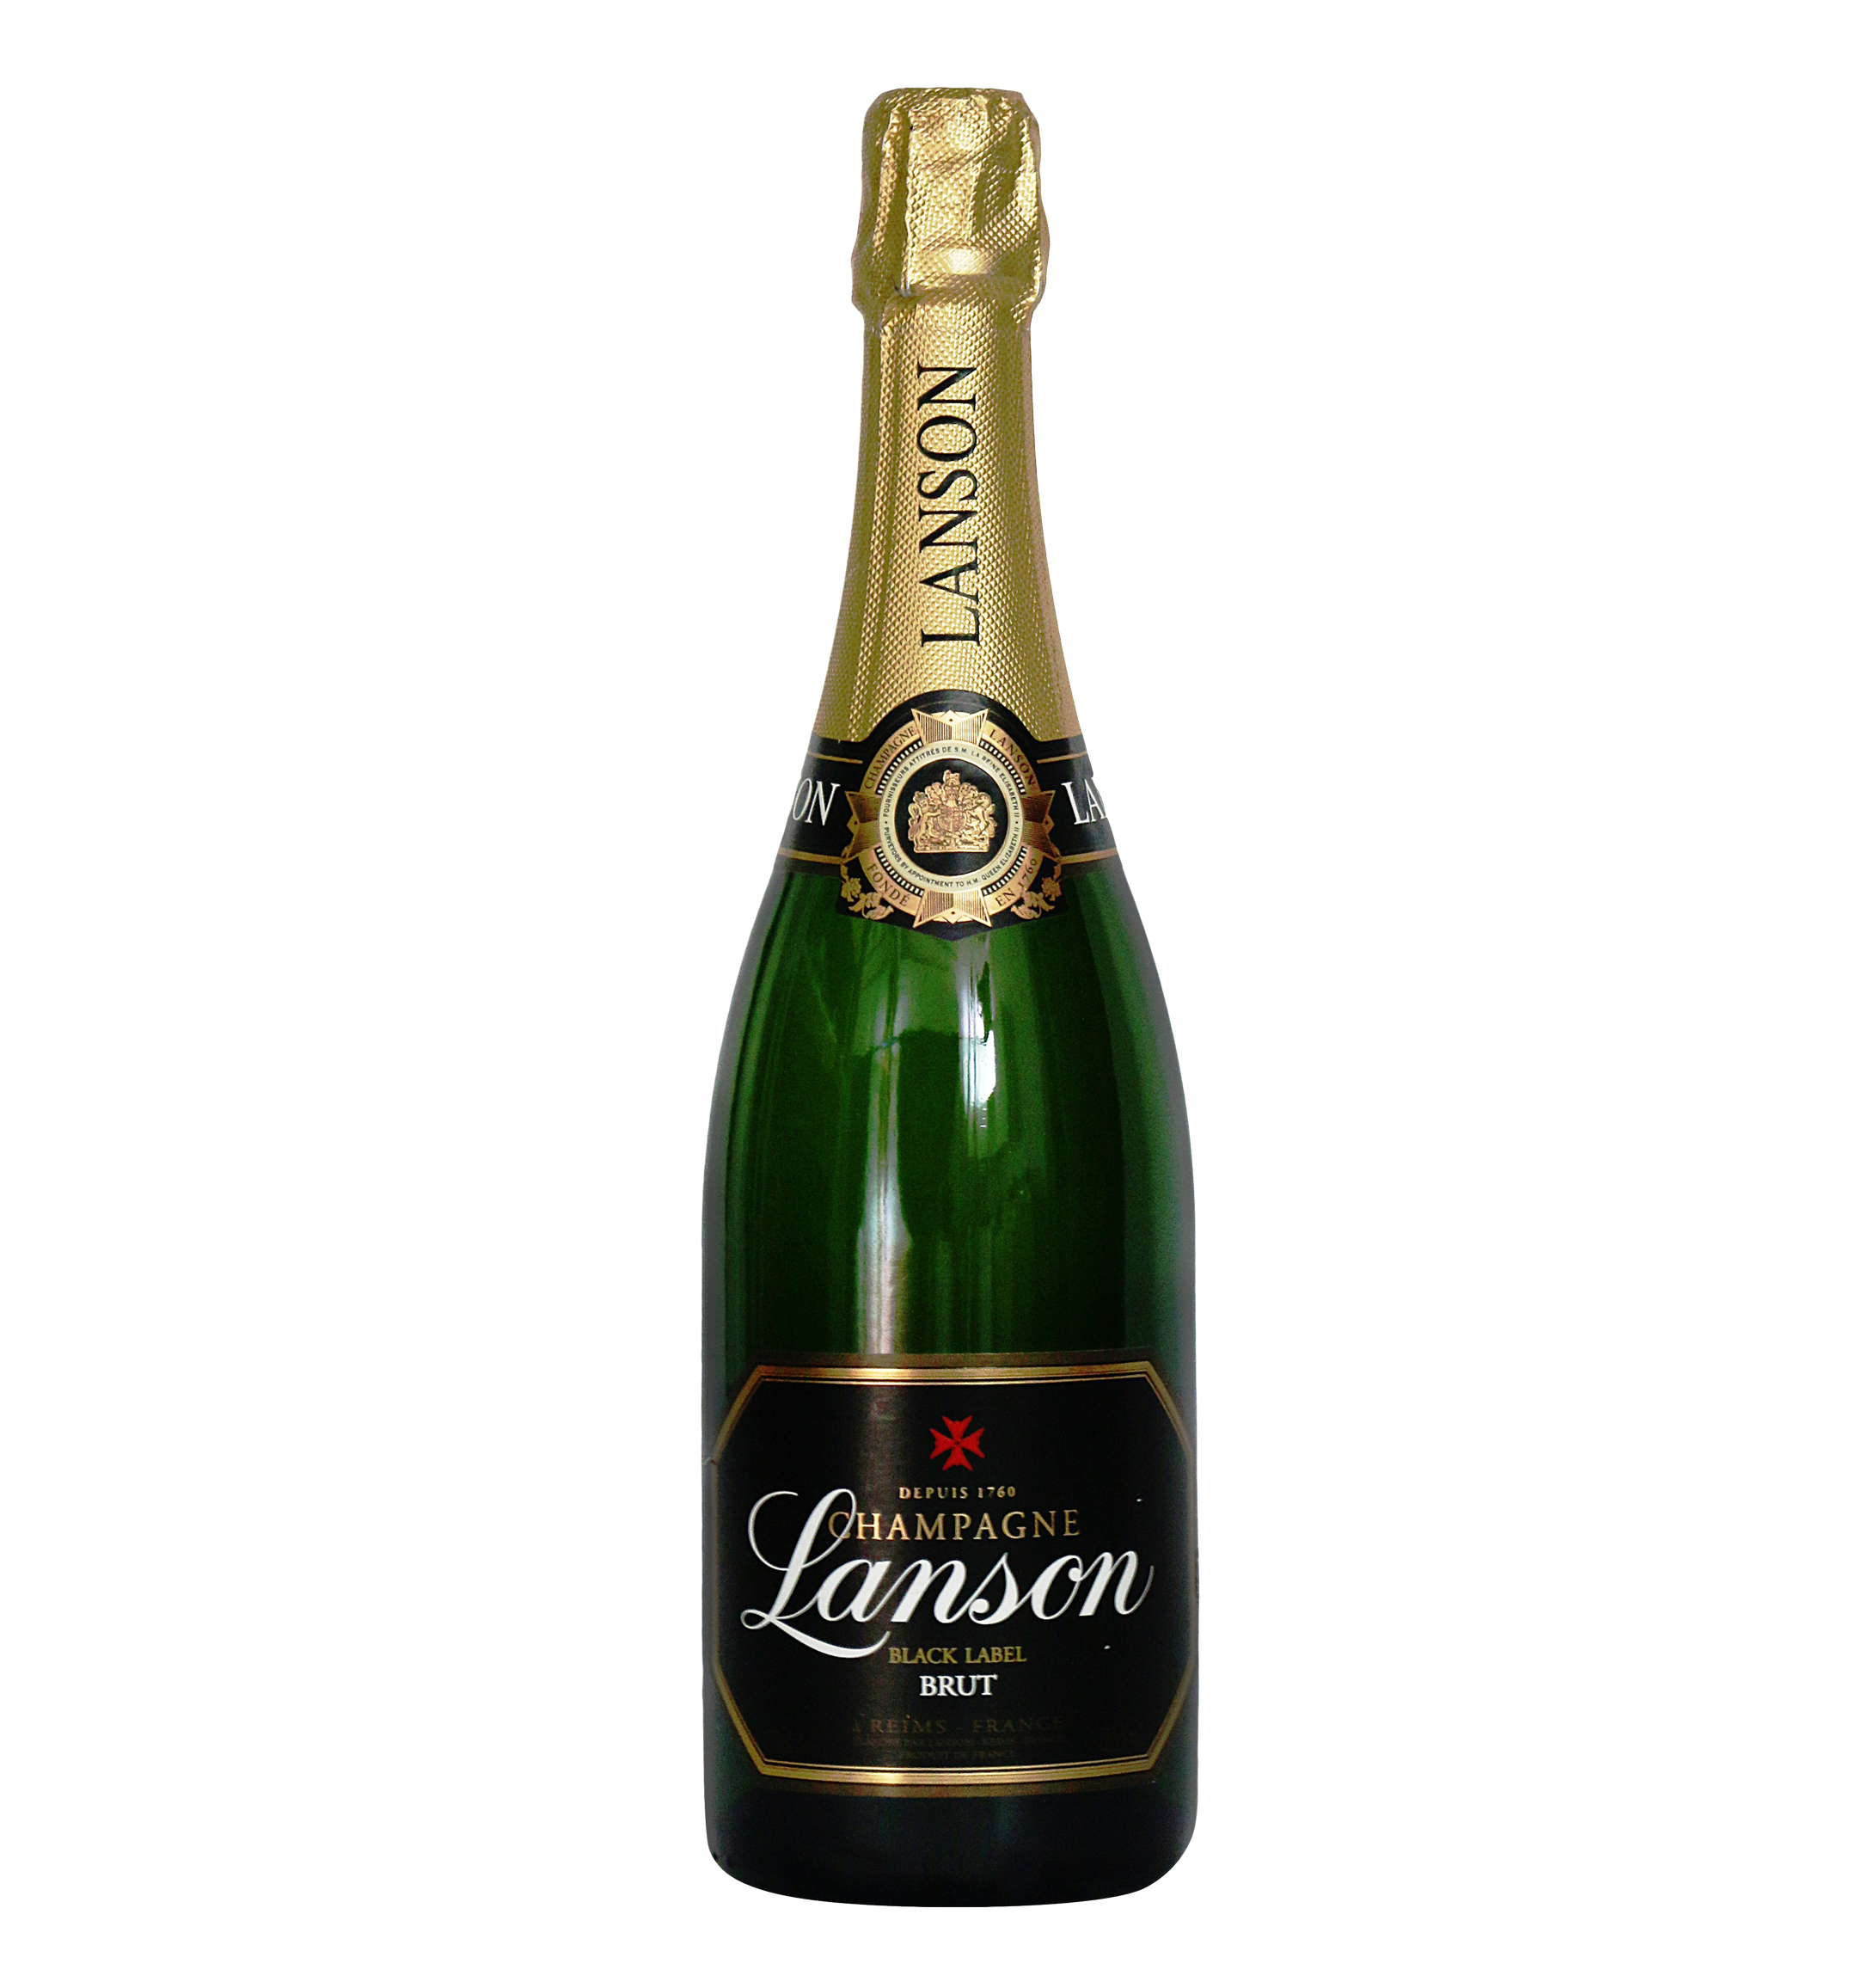 cleaned alcohol the bottle of Lanson brand background image